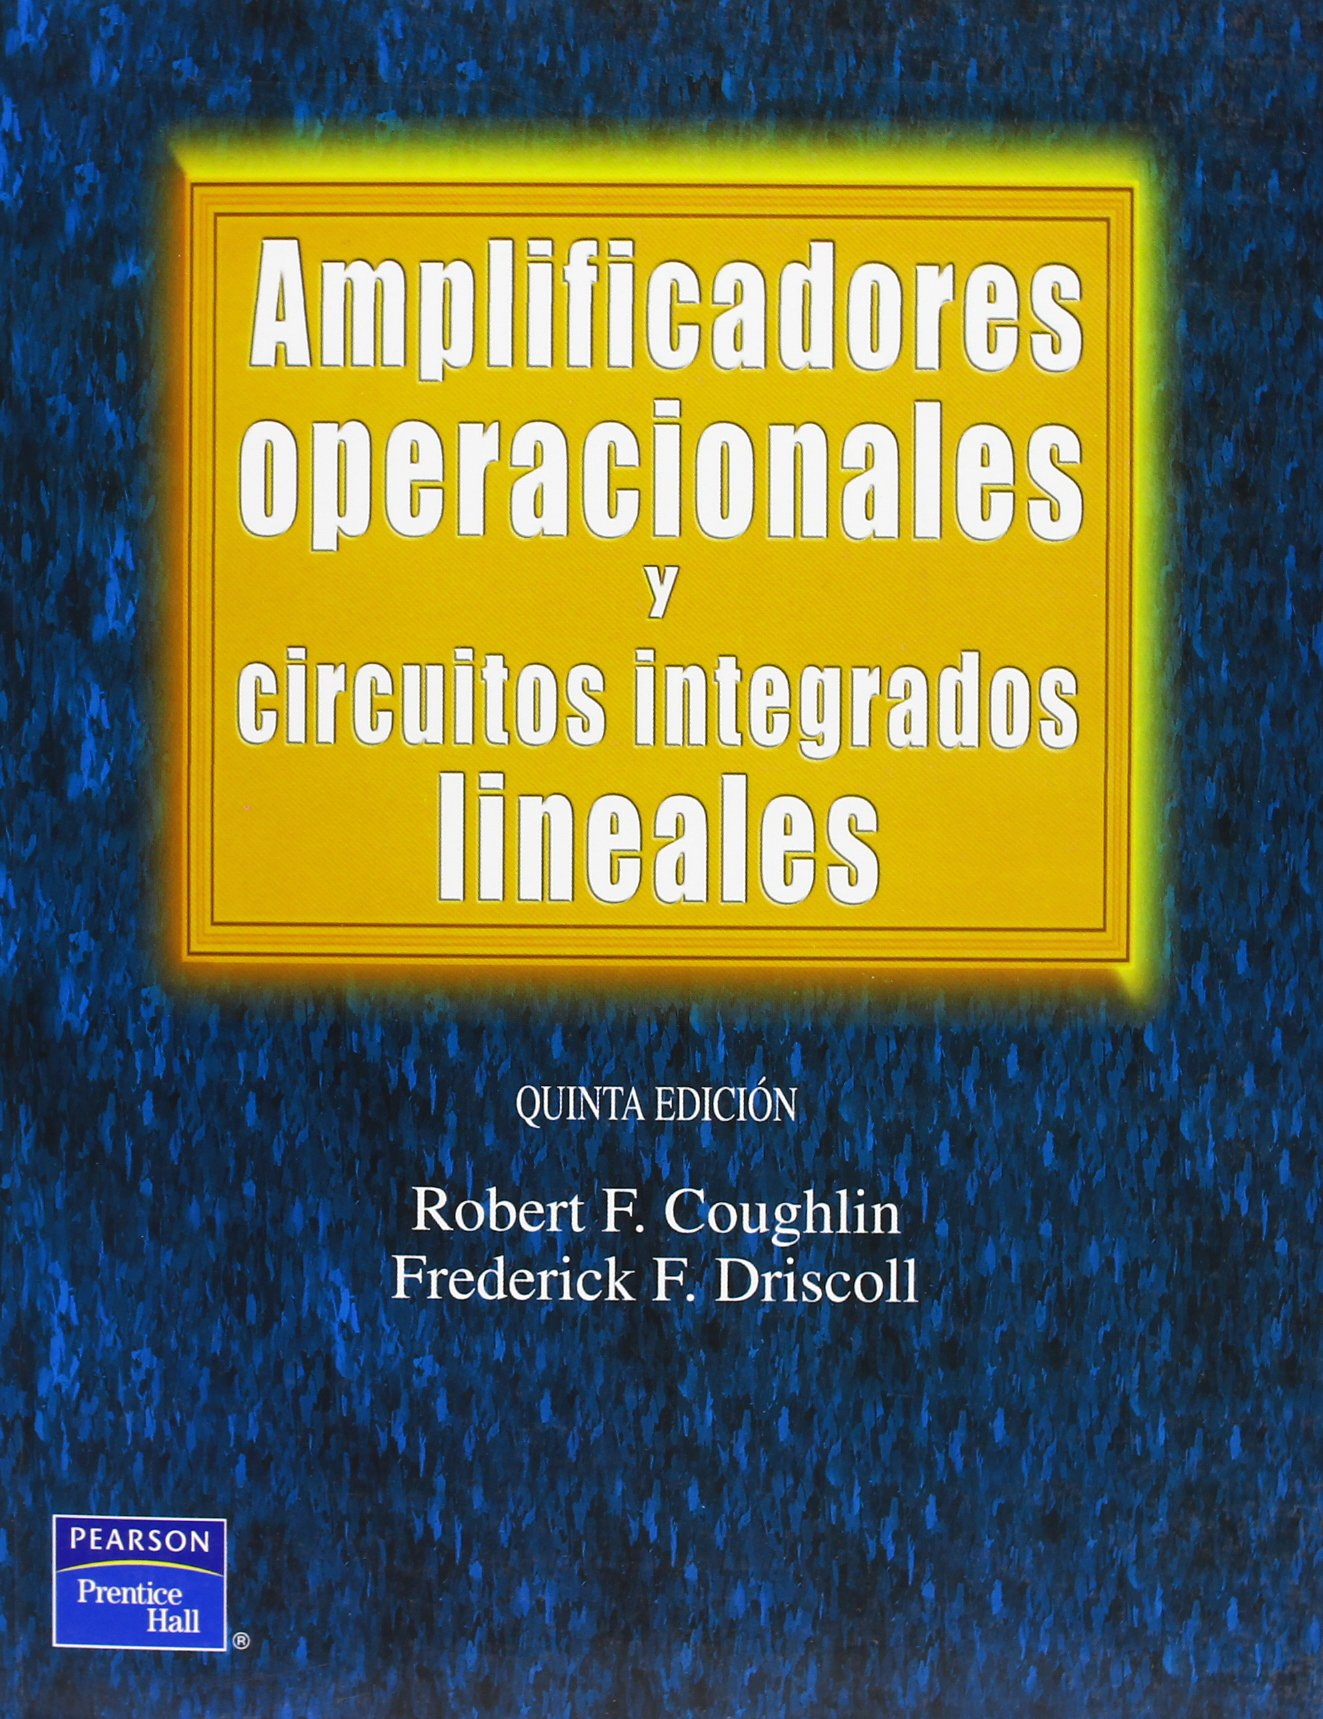 Amplificadores integrados